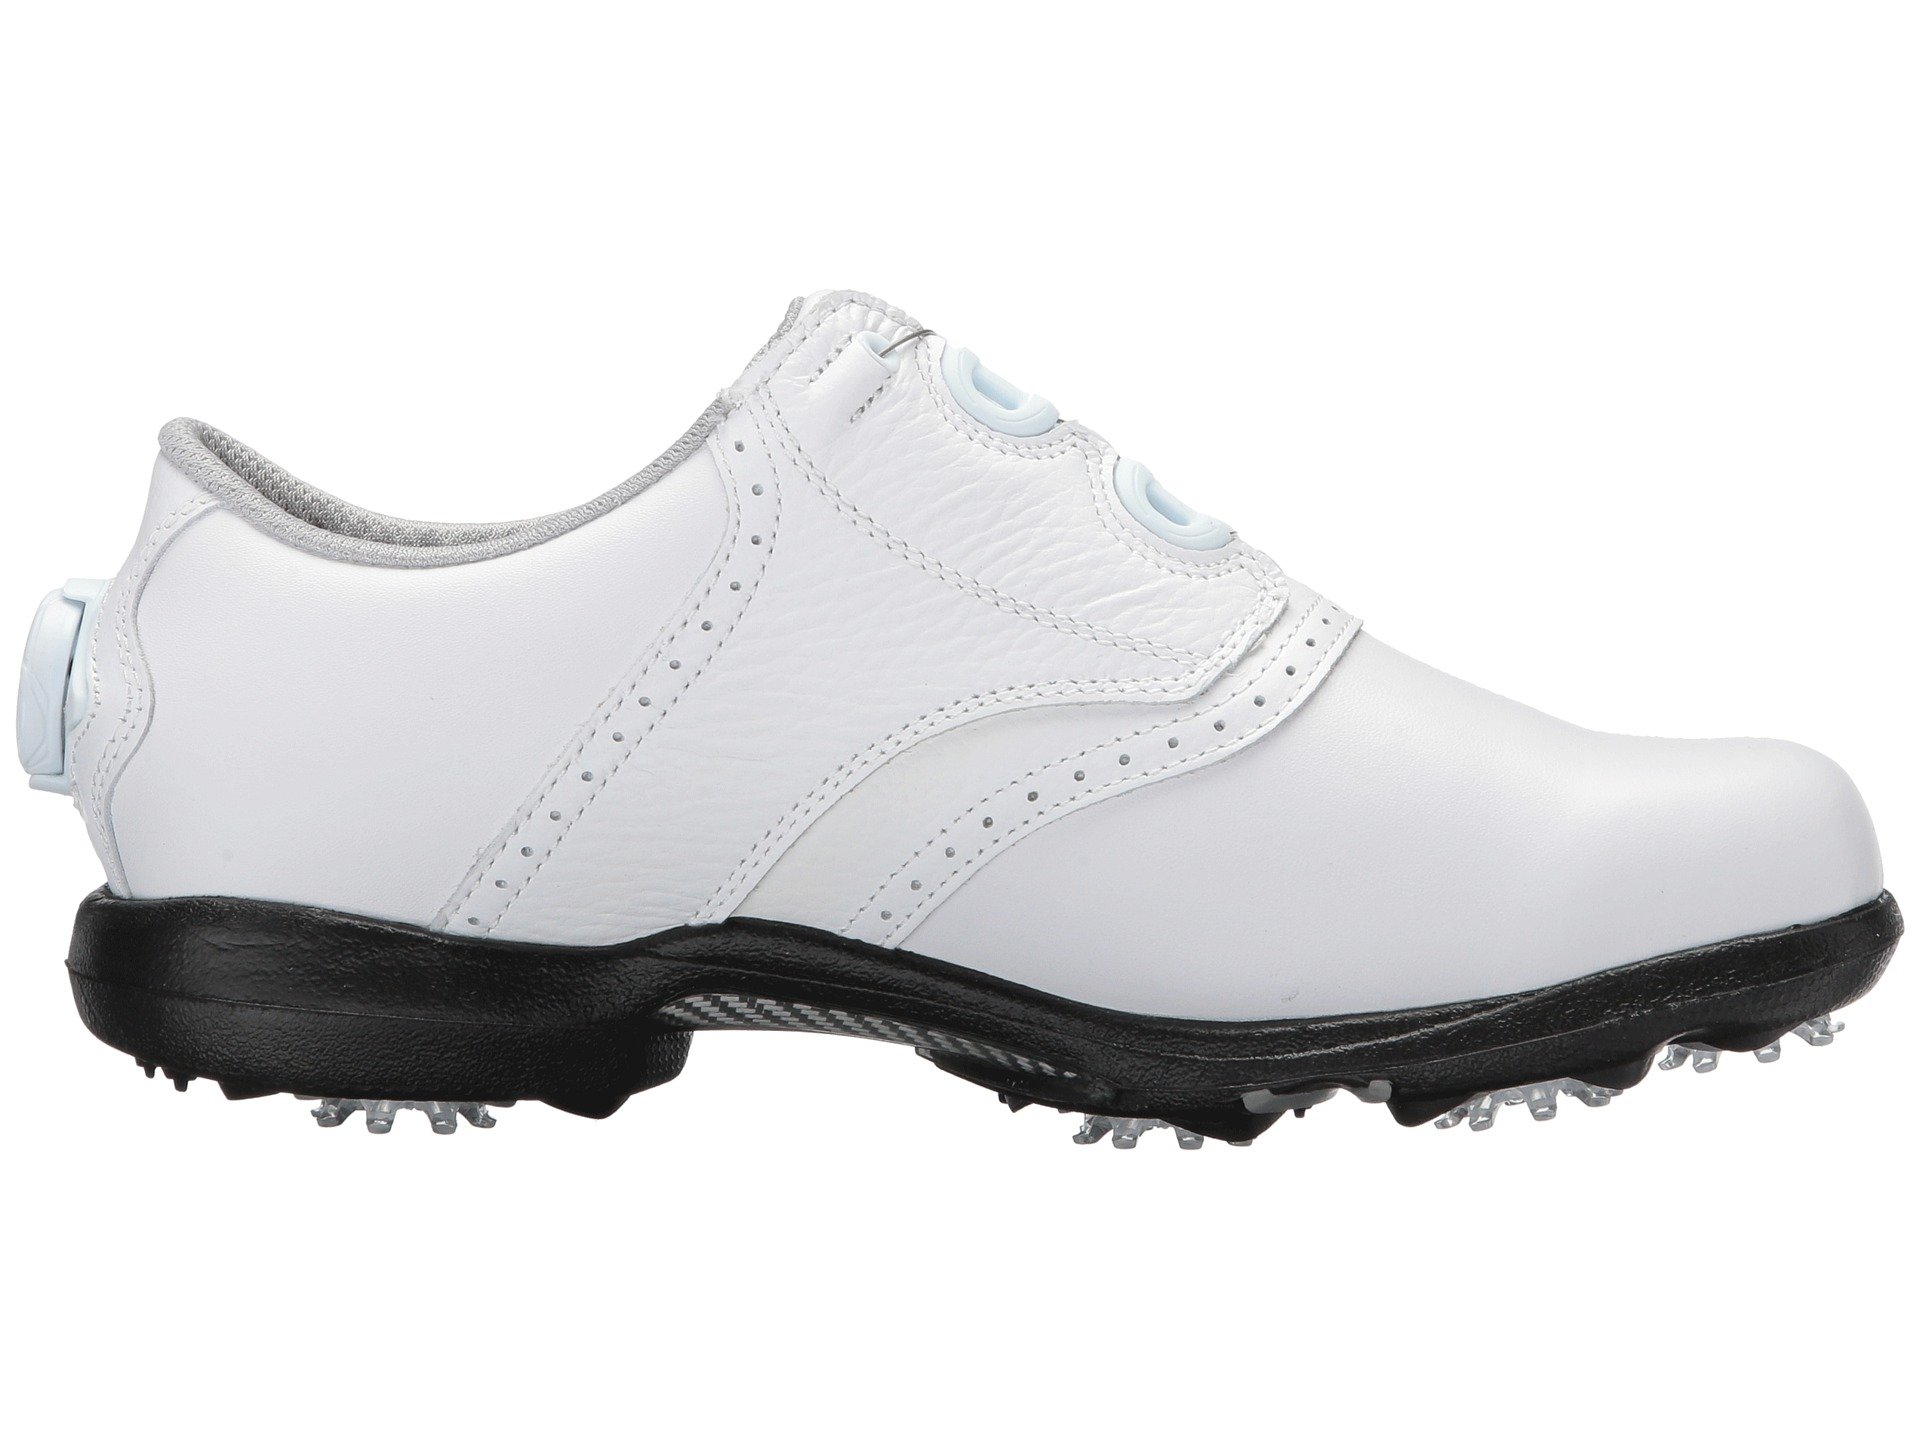 White Boa Traditional Cleated Blucher All Dryjoys Saddle Footjoy Over n8TqtEwfvx